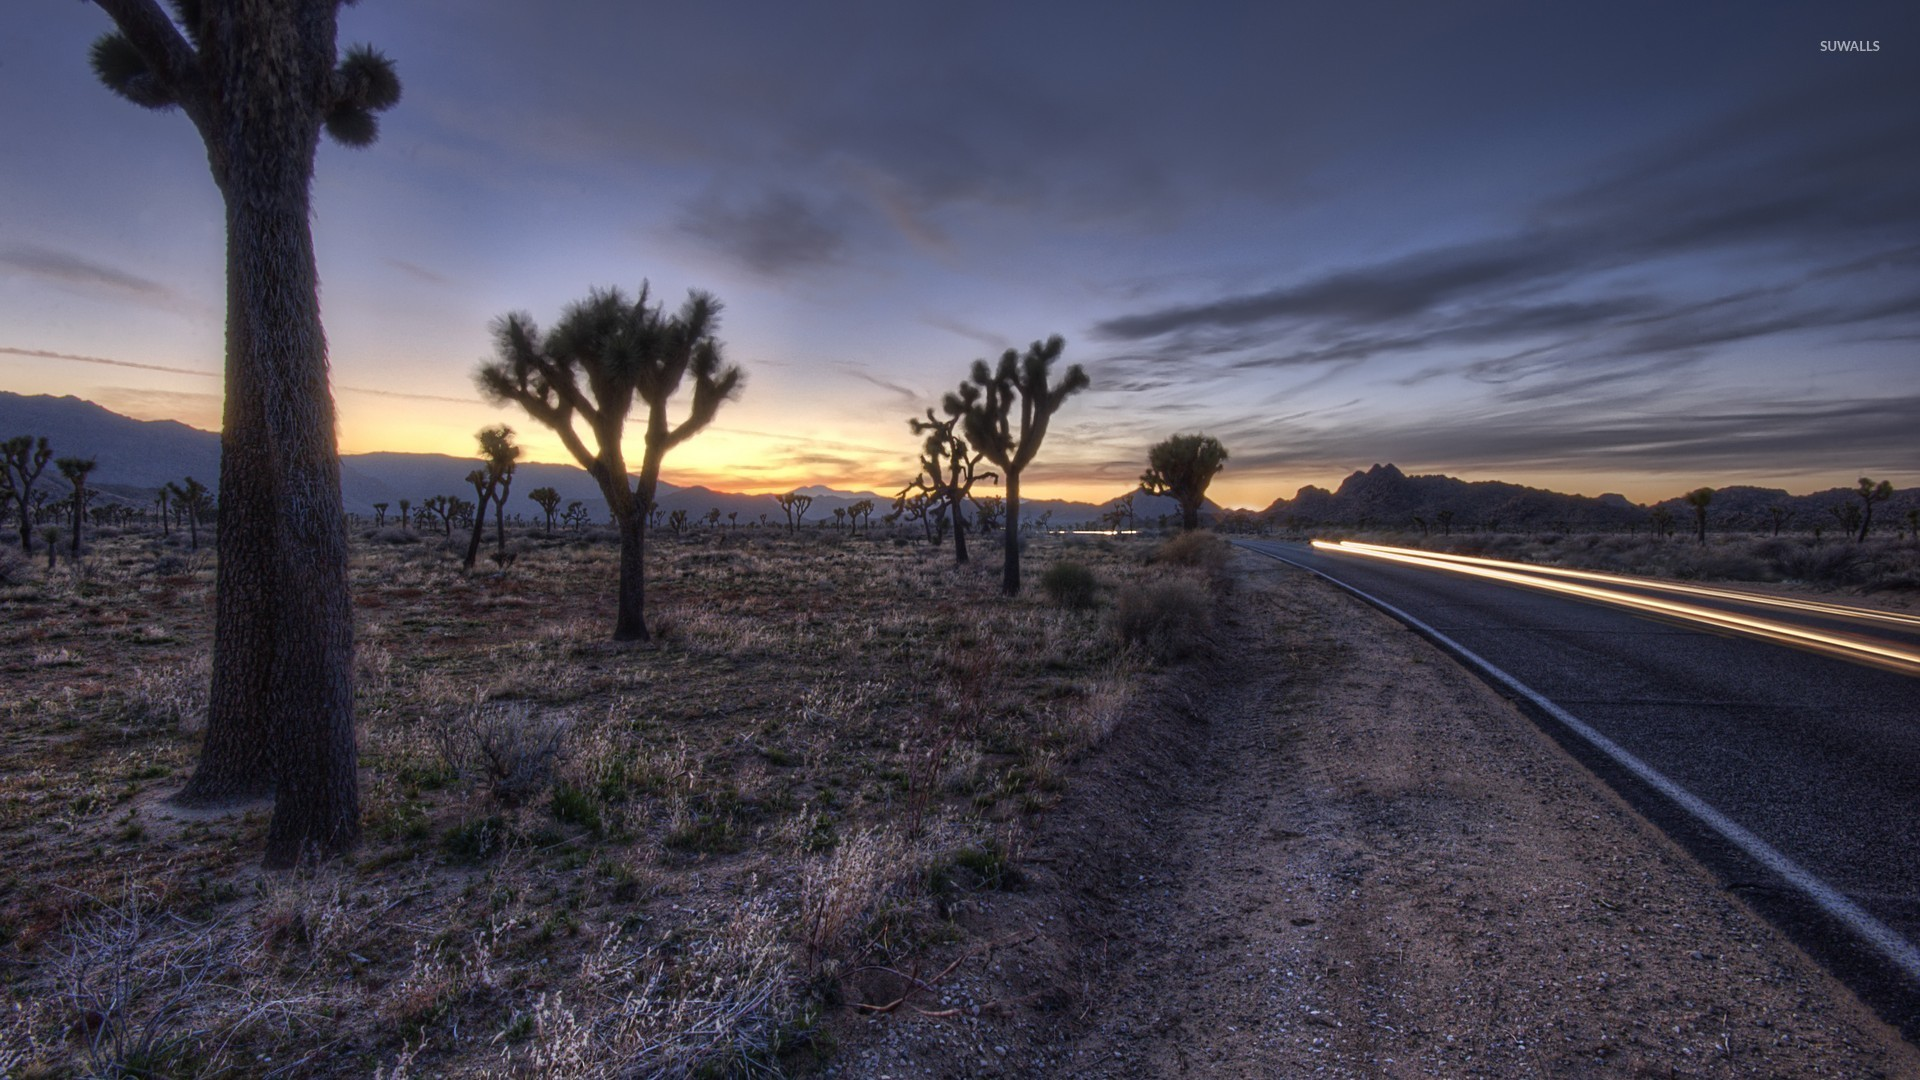 joshua tree national park [5] wallpaper - nature wallpapers - #45133